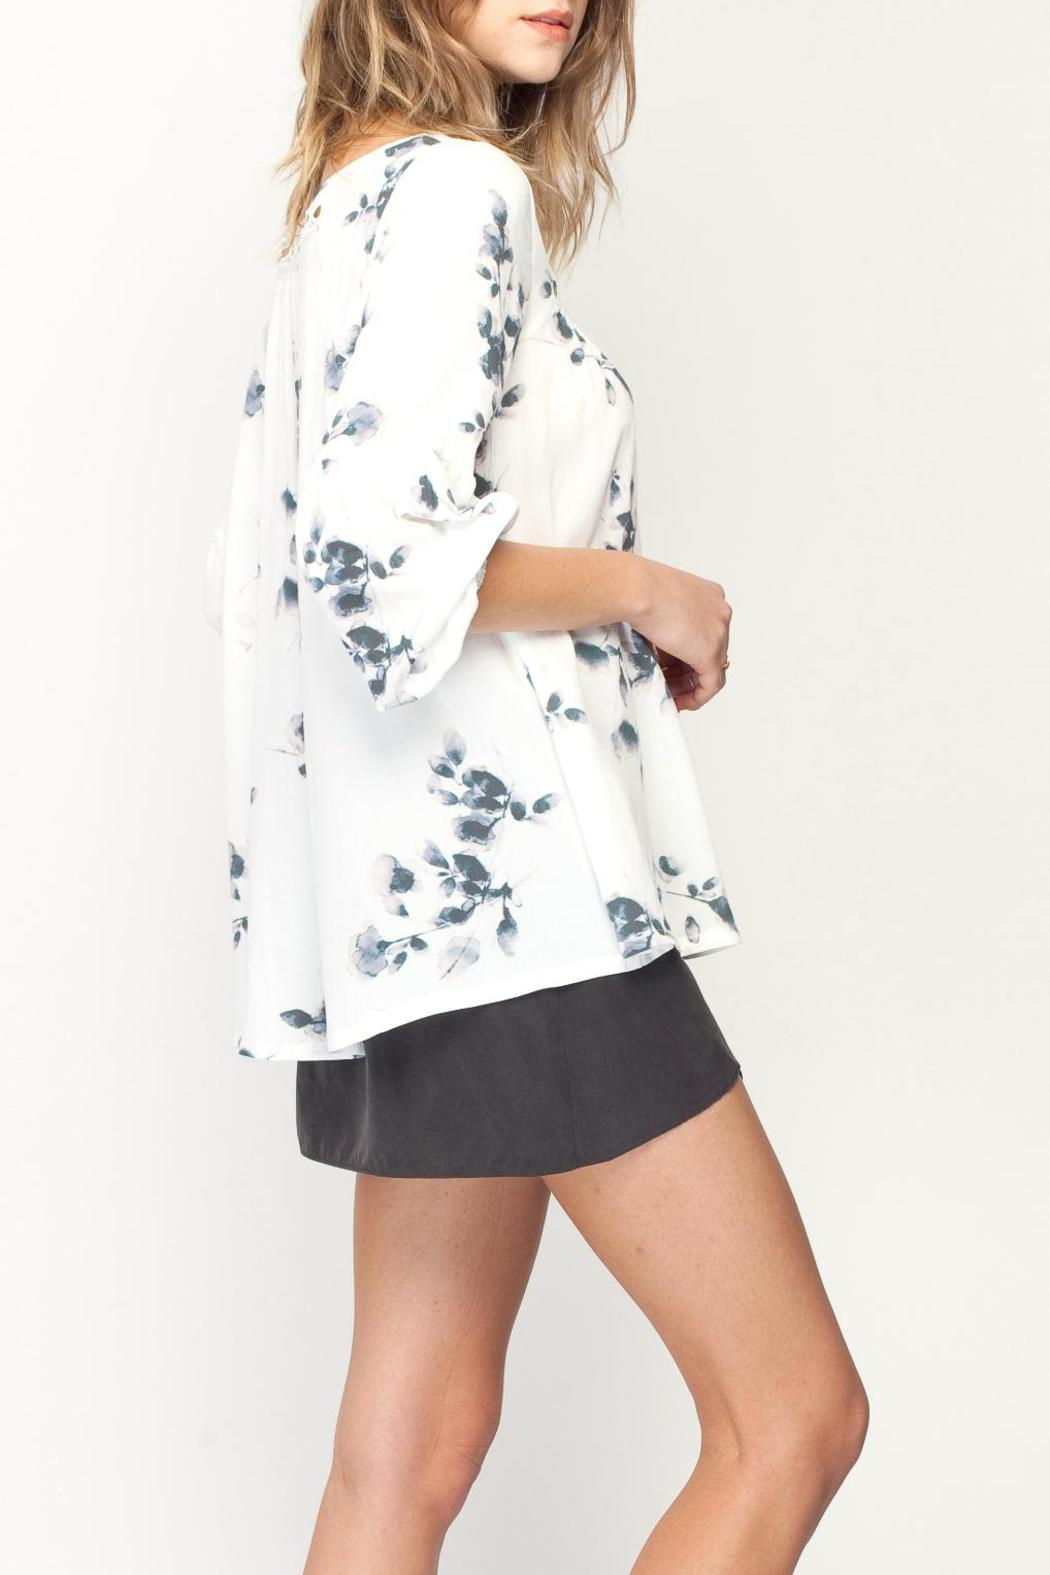 Gentle Fawn Botanical Print Top - Side Cropped Image